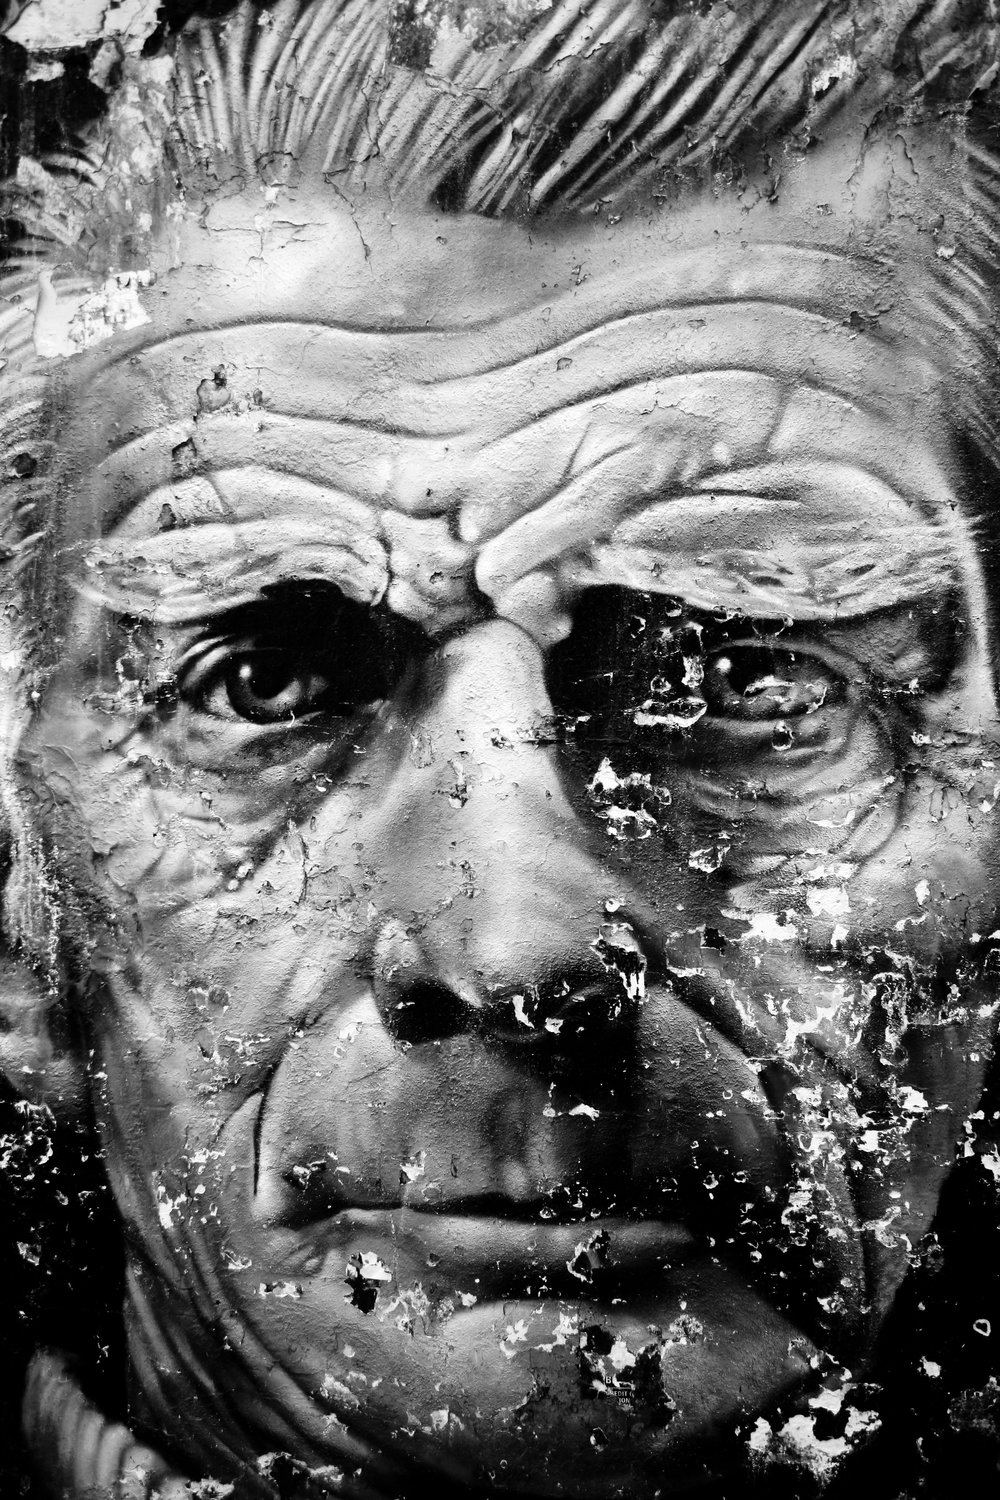 STREET ART OF SAMUEL BECKETT